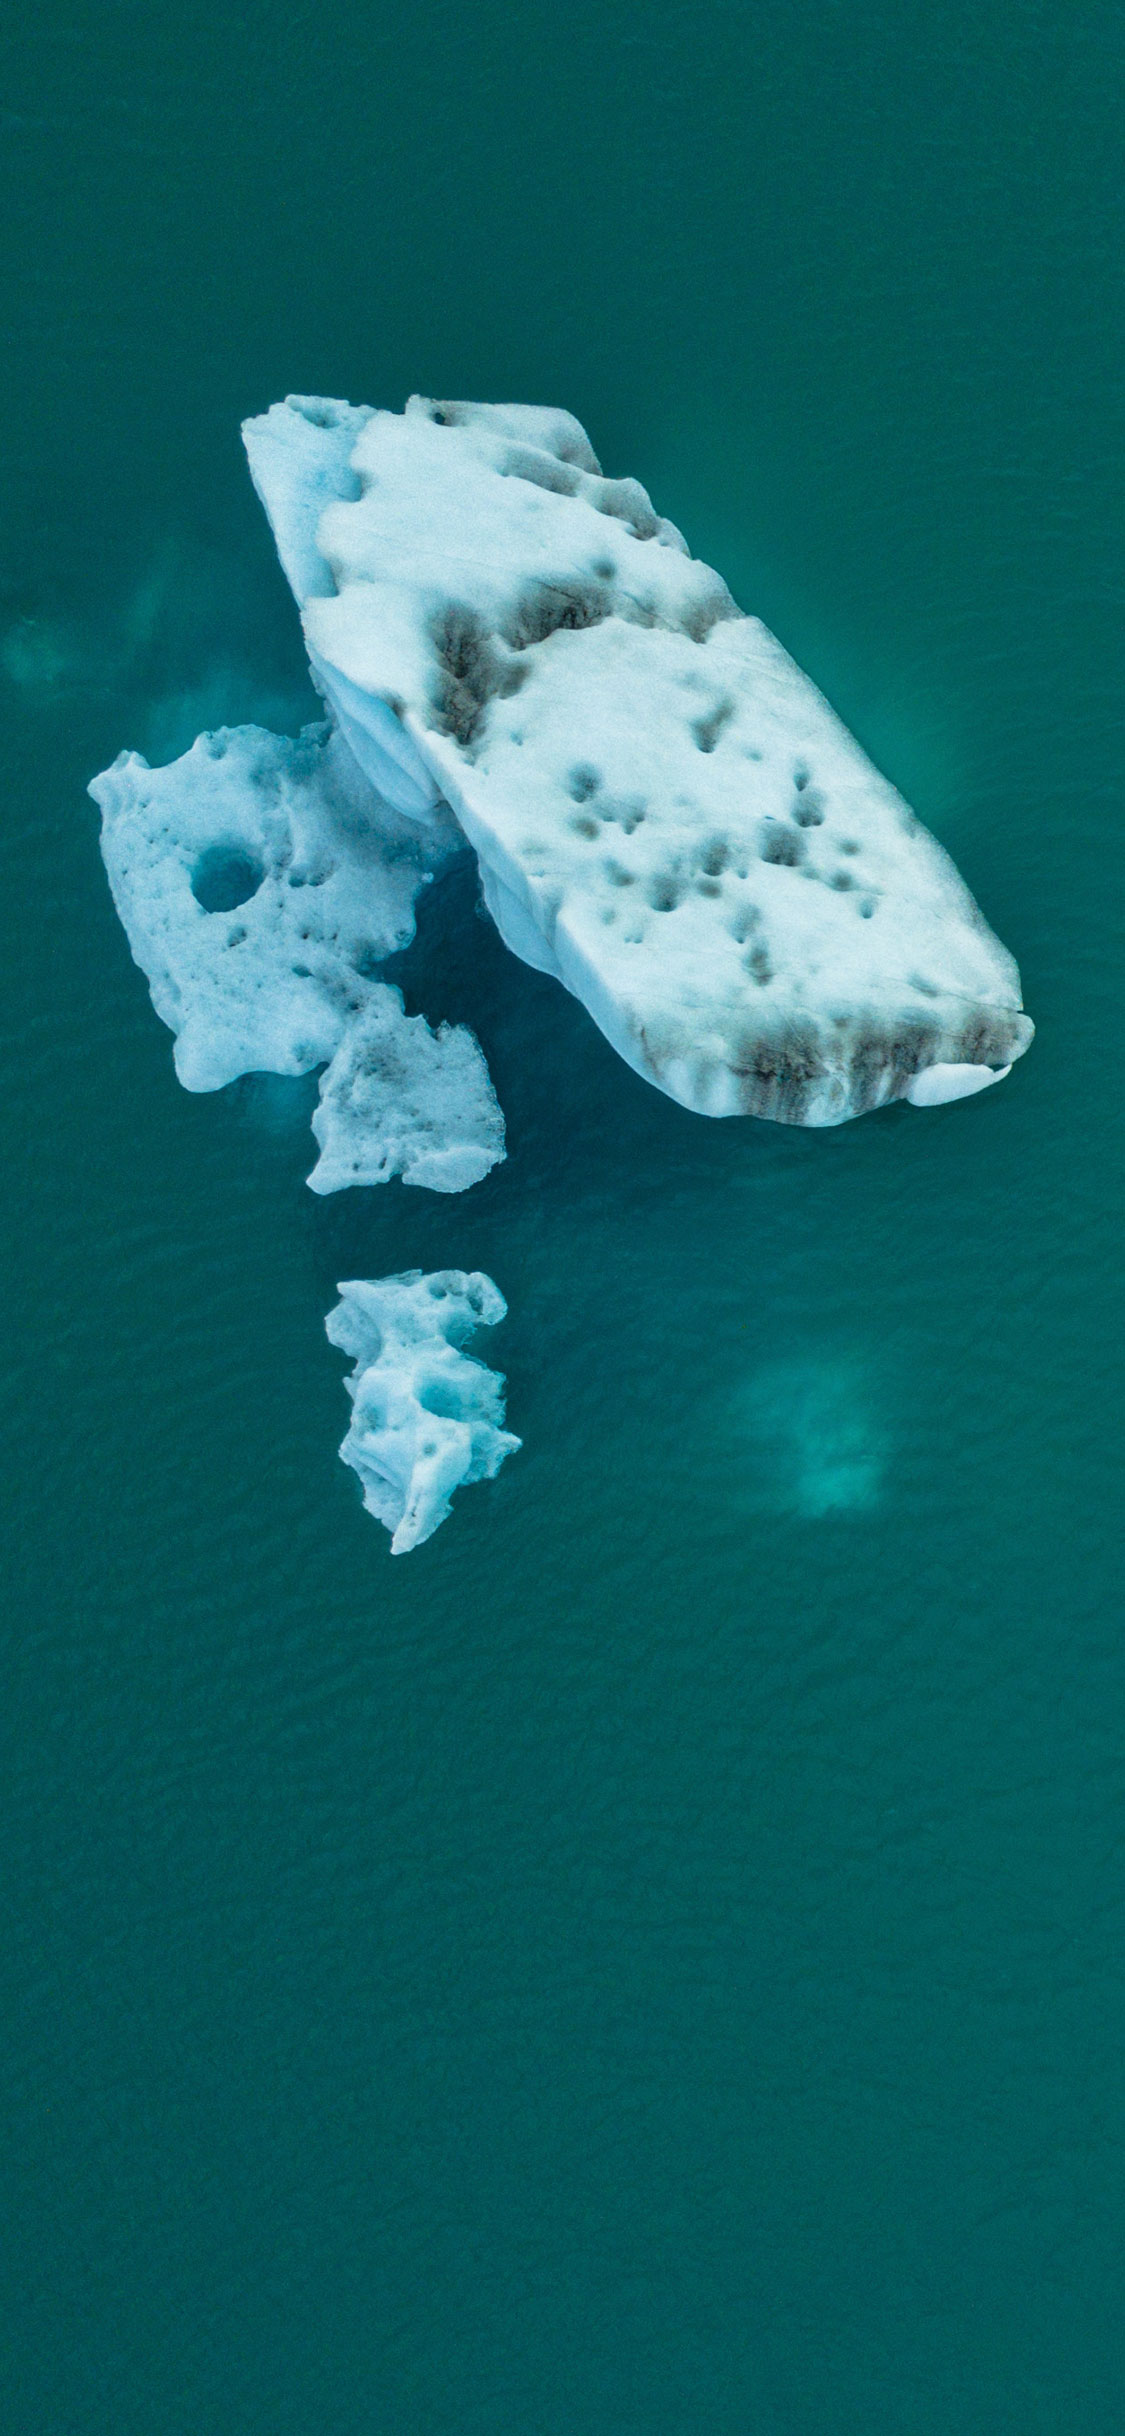 iPhone wallpaper iceberg green Fonds d'écran iPhone du 05/09/2018